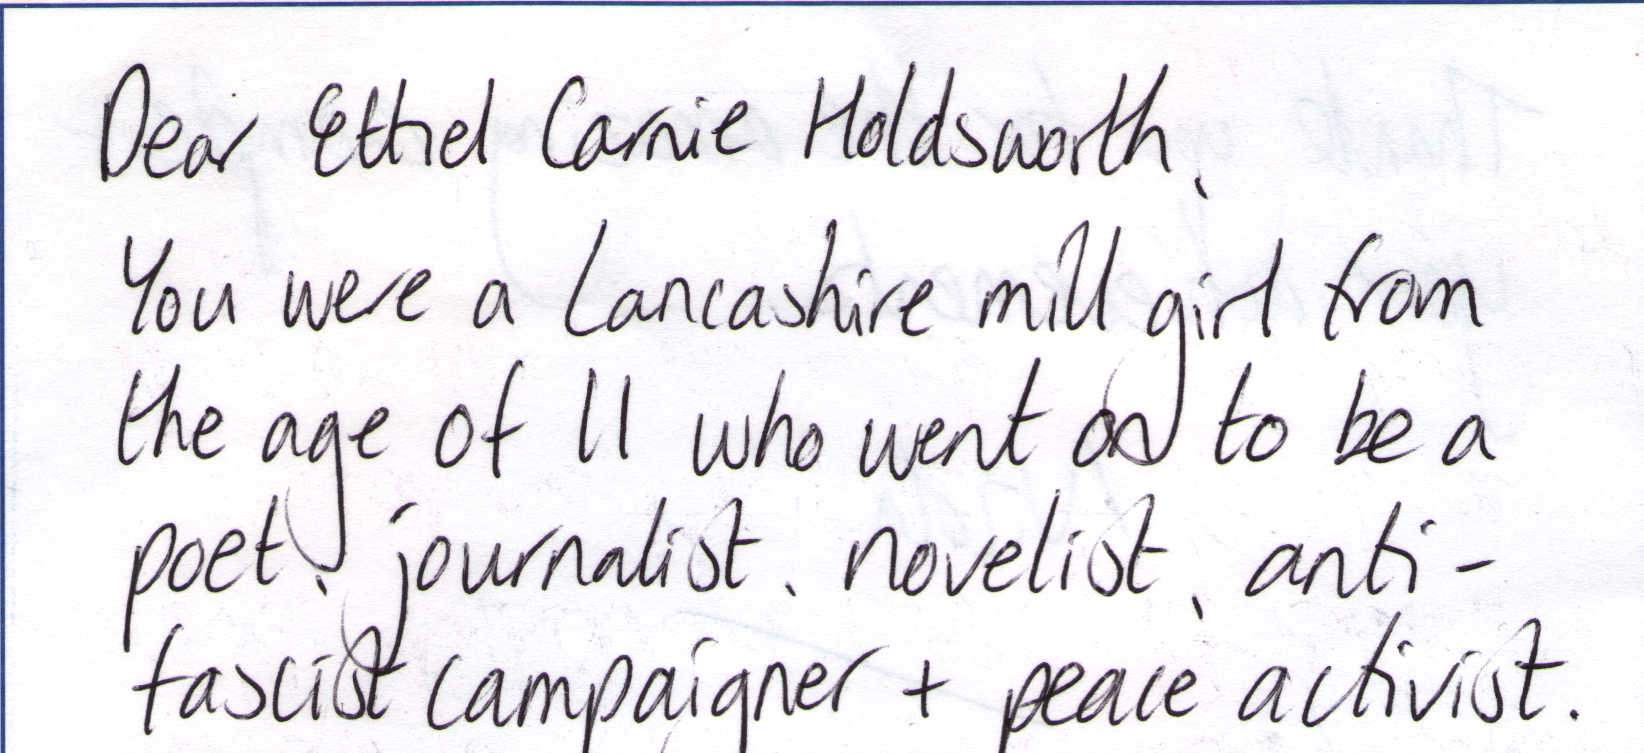 Letter to Ethel Carnie Holdsworth from Nicola Wilson